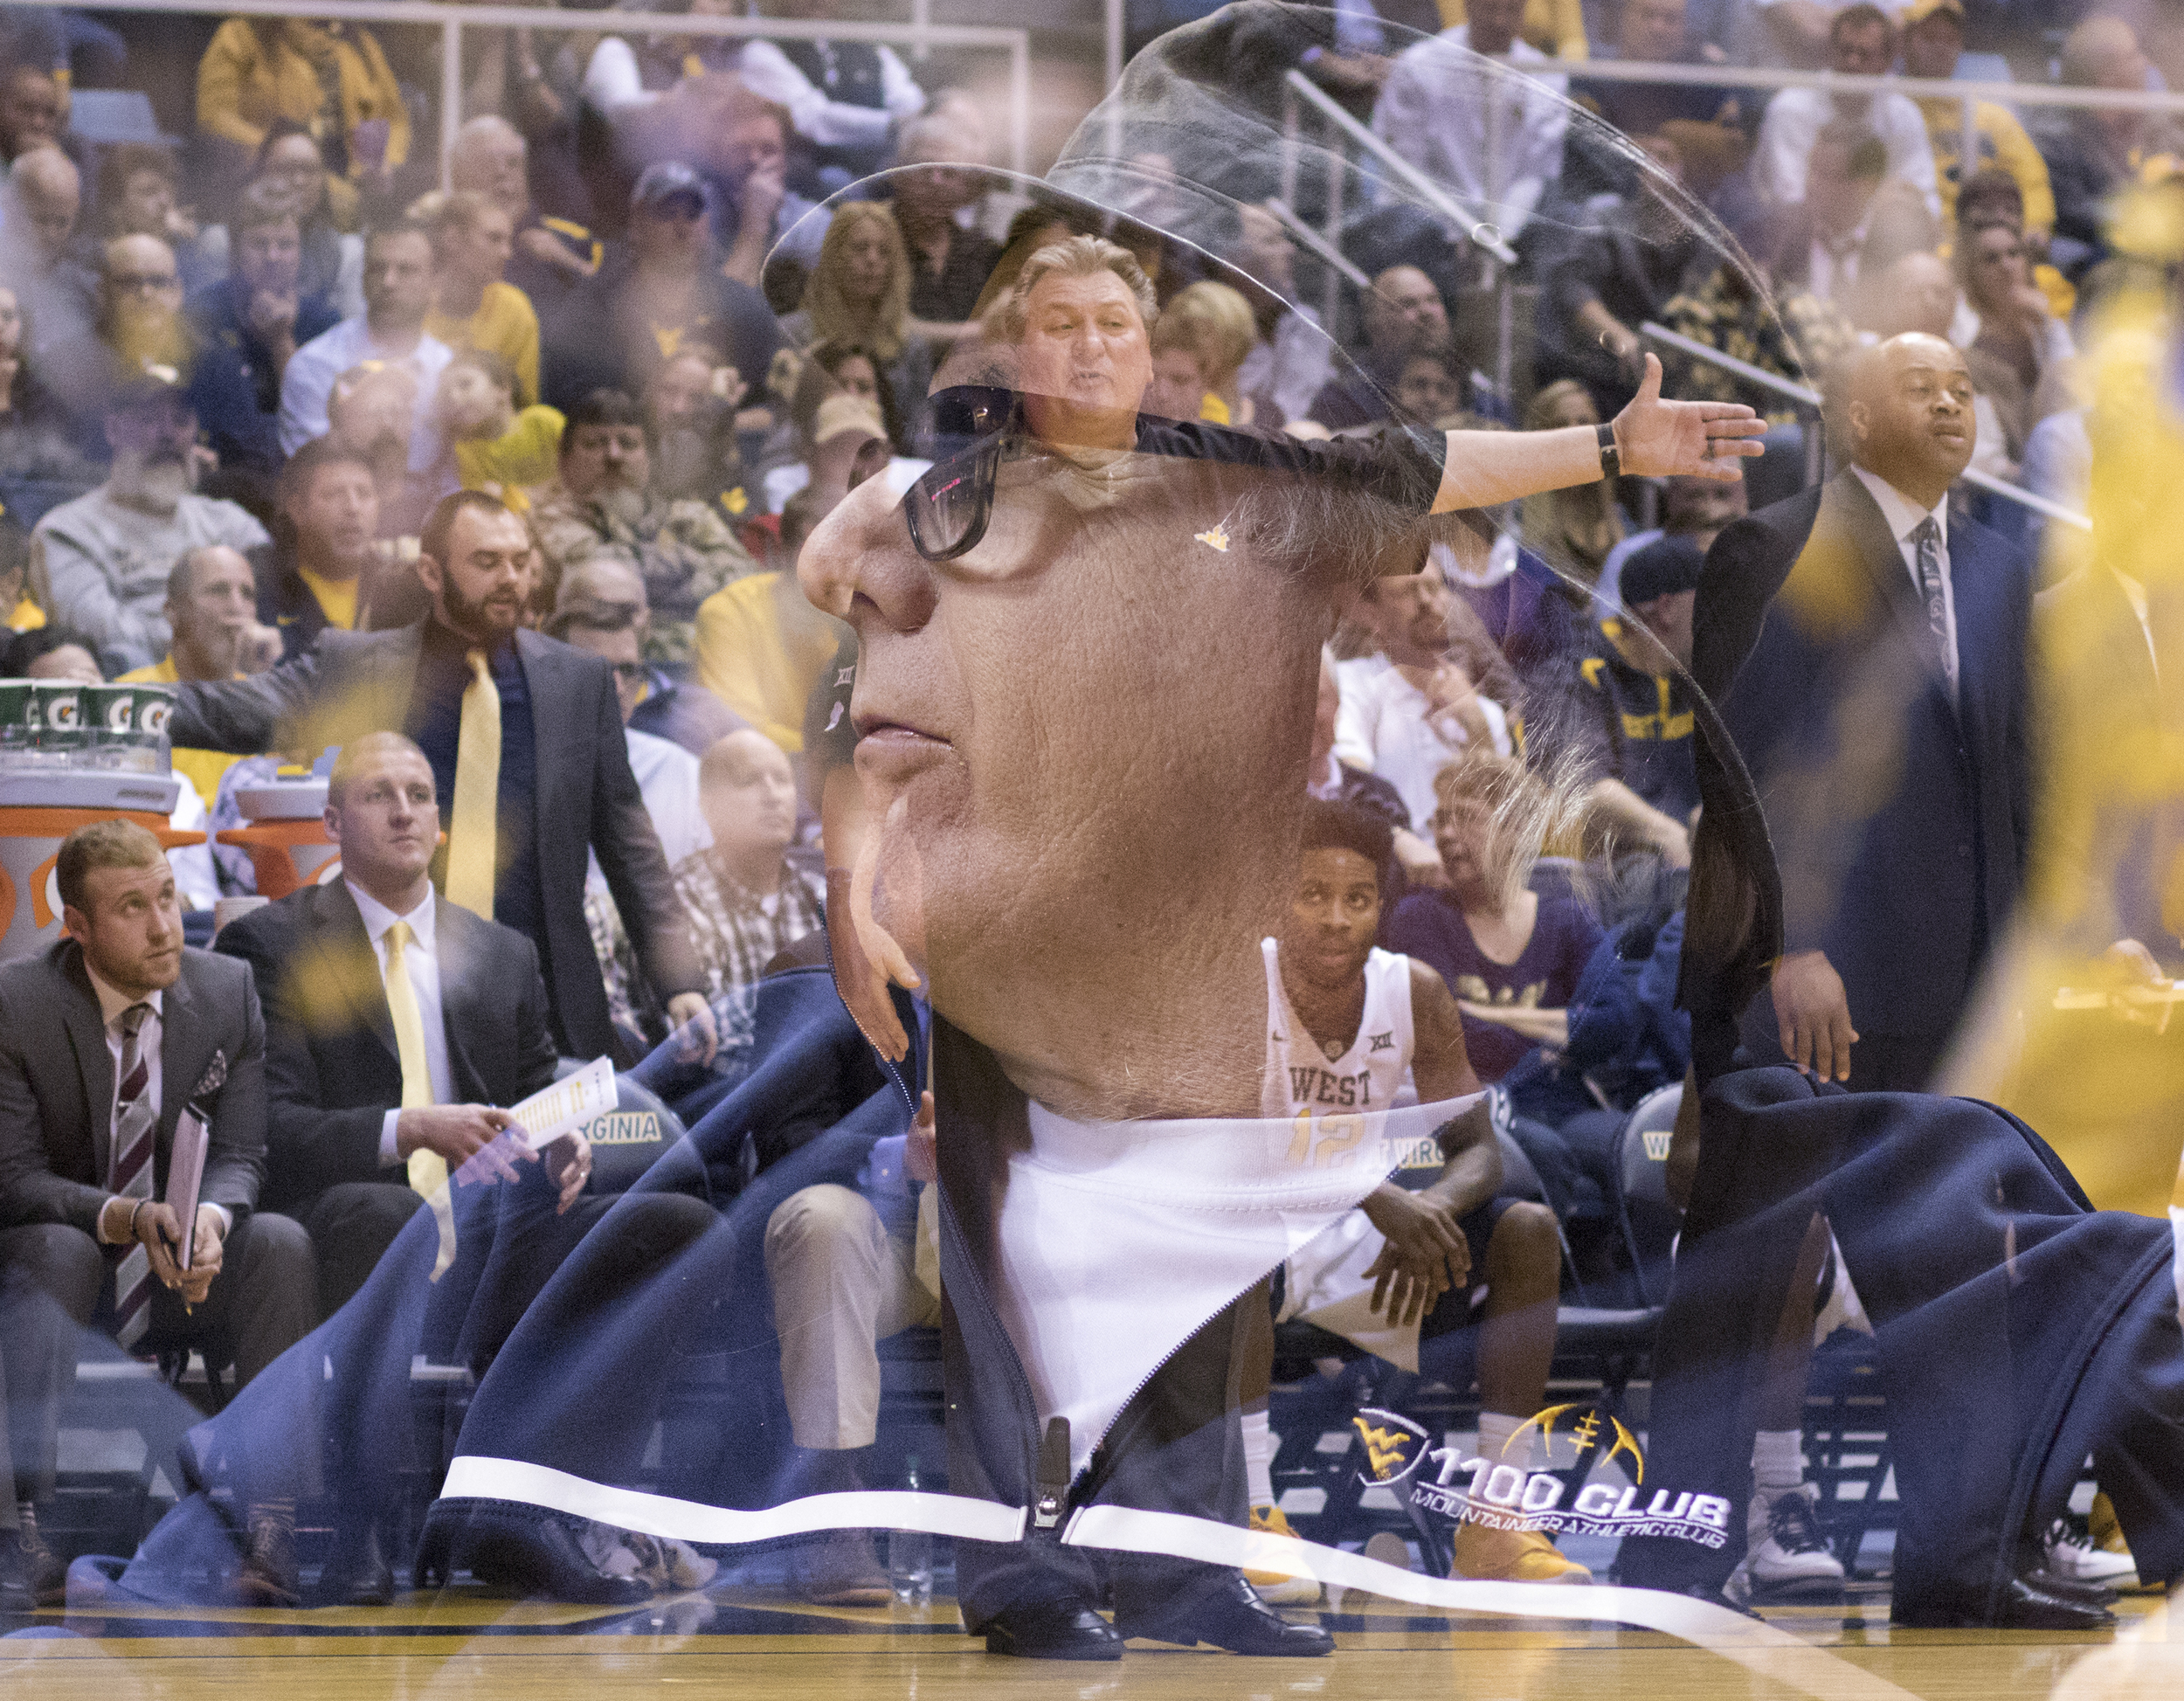 A season ticket holder watches as coach Bob Huggins yells to his team during a stop in action.